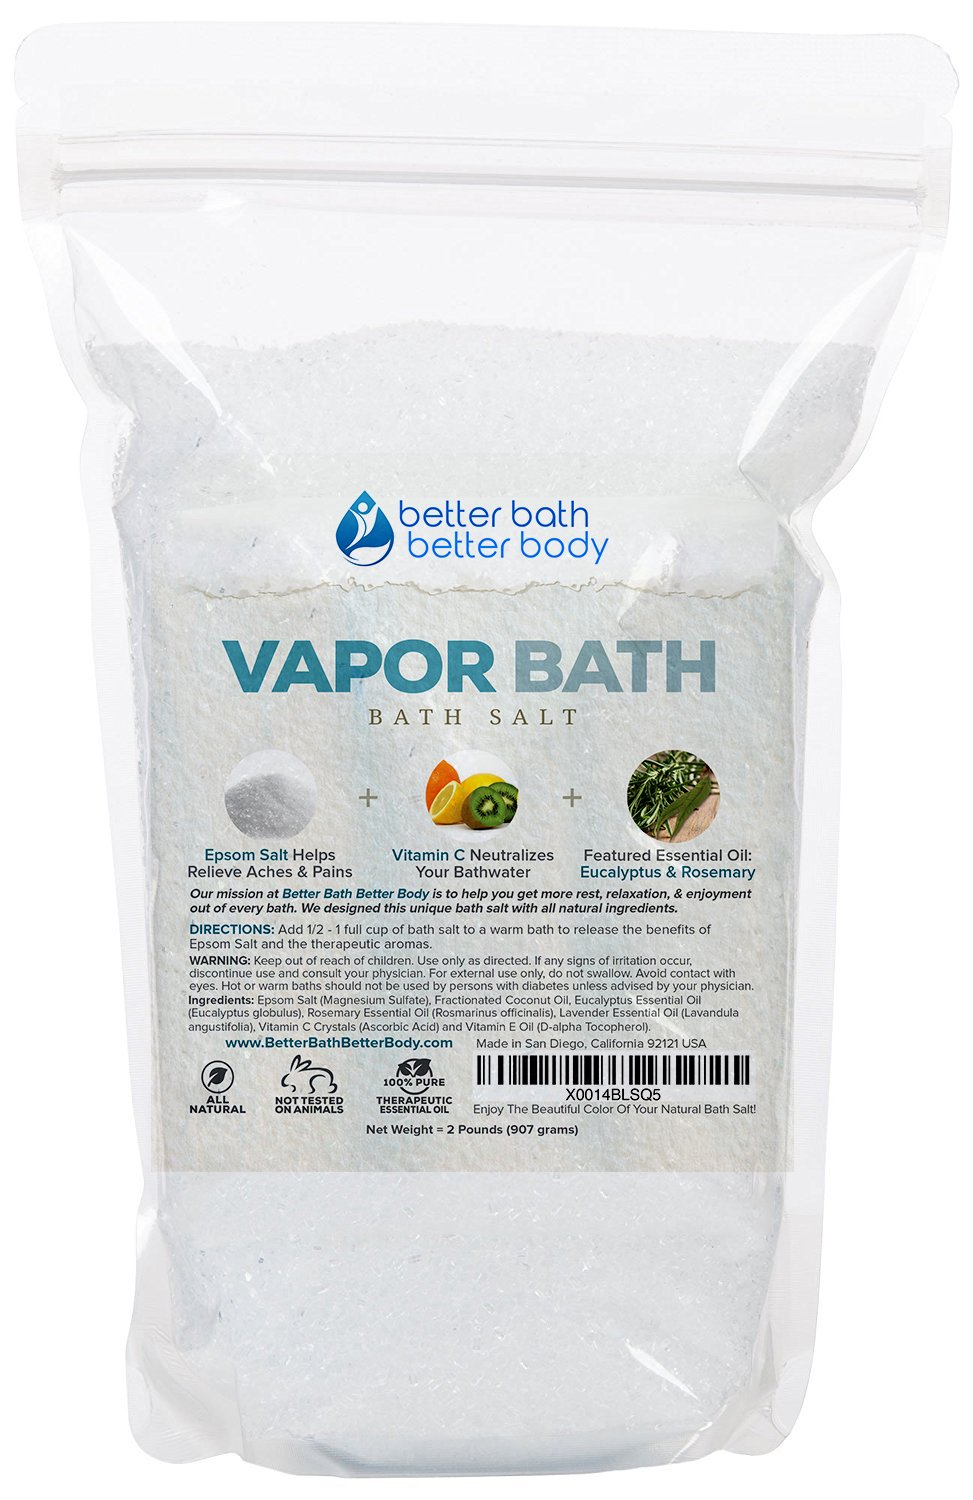 Vapor Bath Salt 32oz (2-Lbs) Epsom Salt With Eucalyptus & Rosemary Essential Oil & Vitamin C Crystals - Soothing Vapors To Relax & Release Natural Bath Soak With Zero Perfumes Zero Dyes Better Bath Better Body